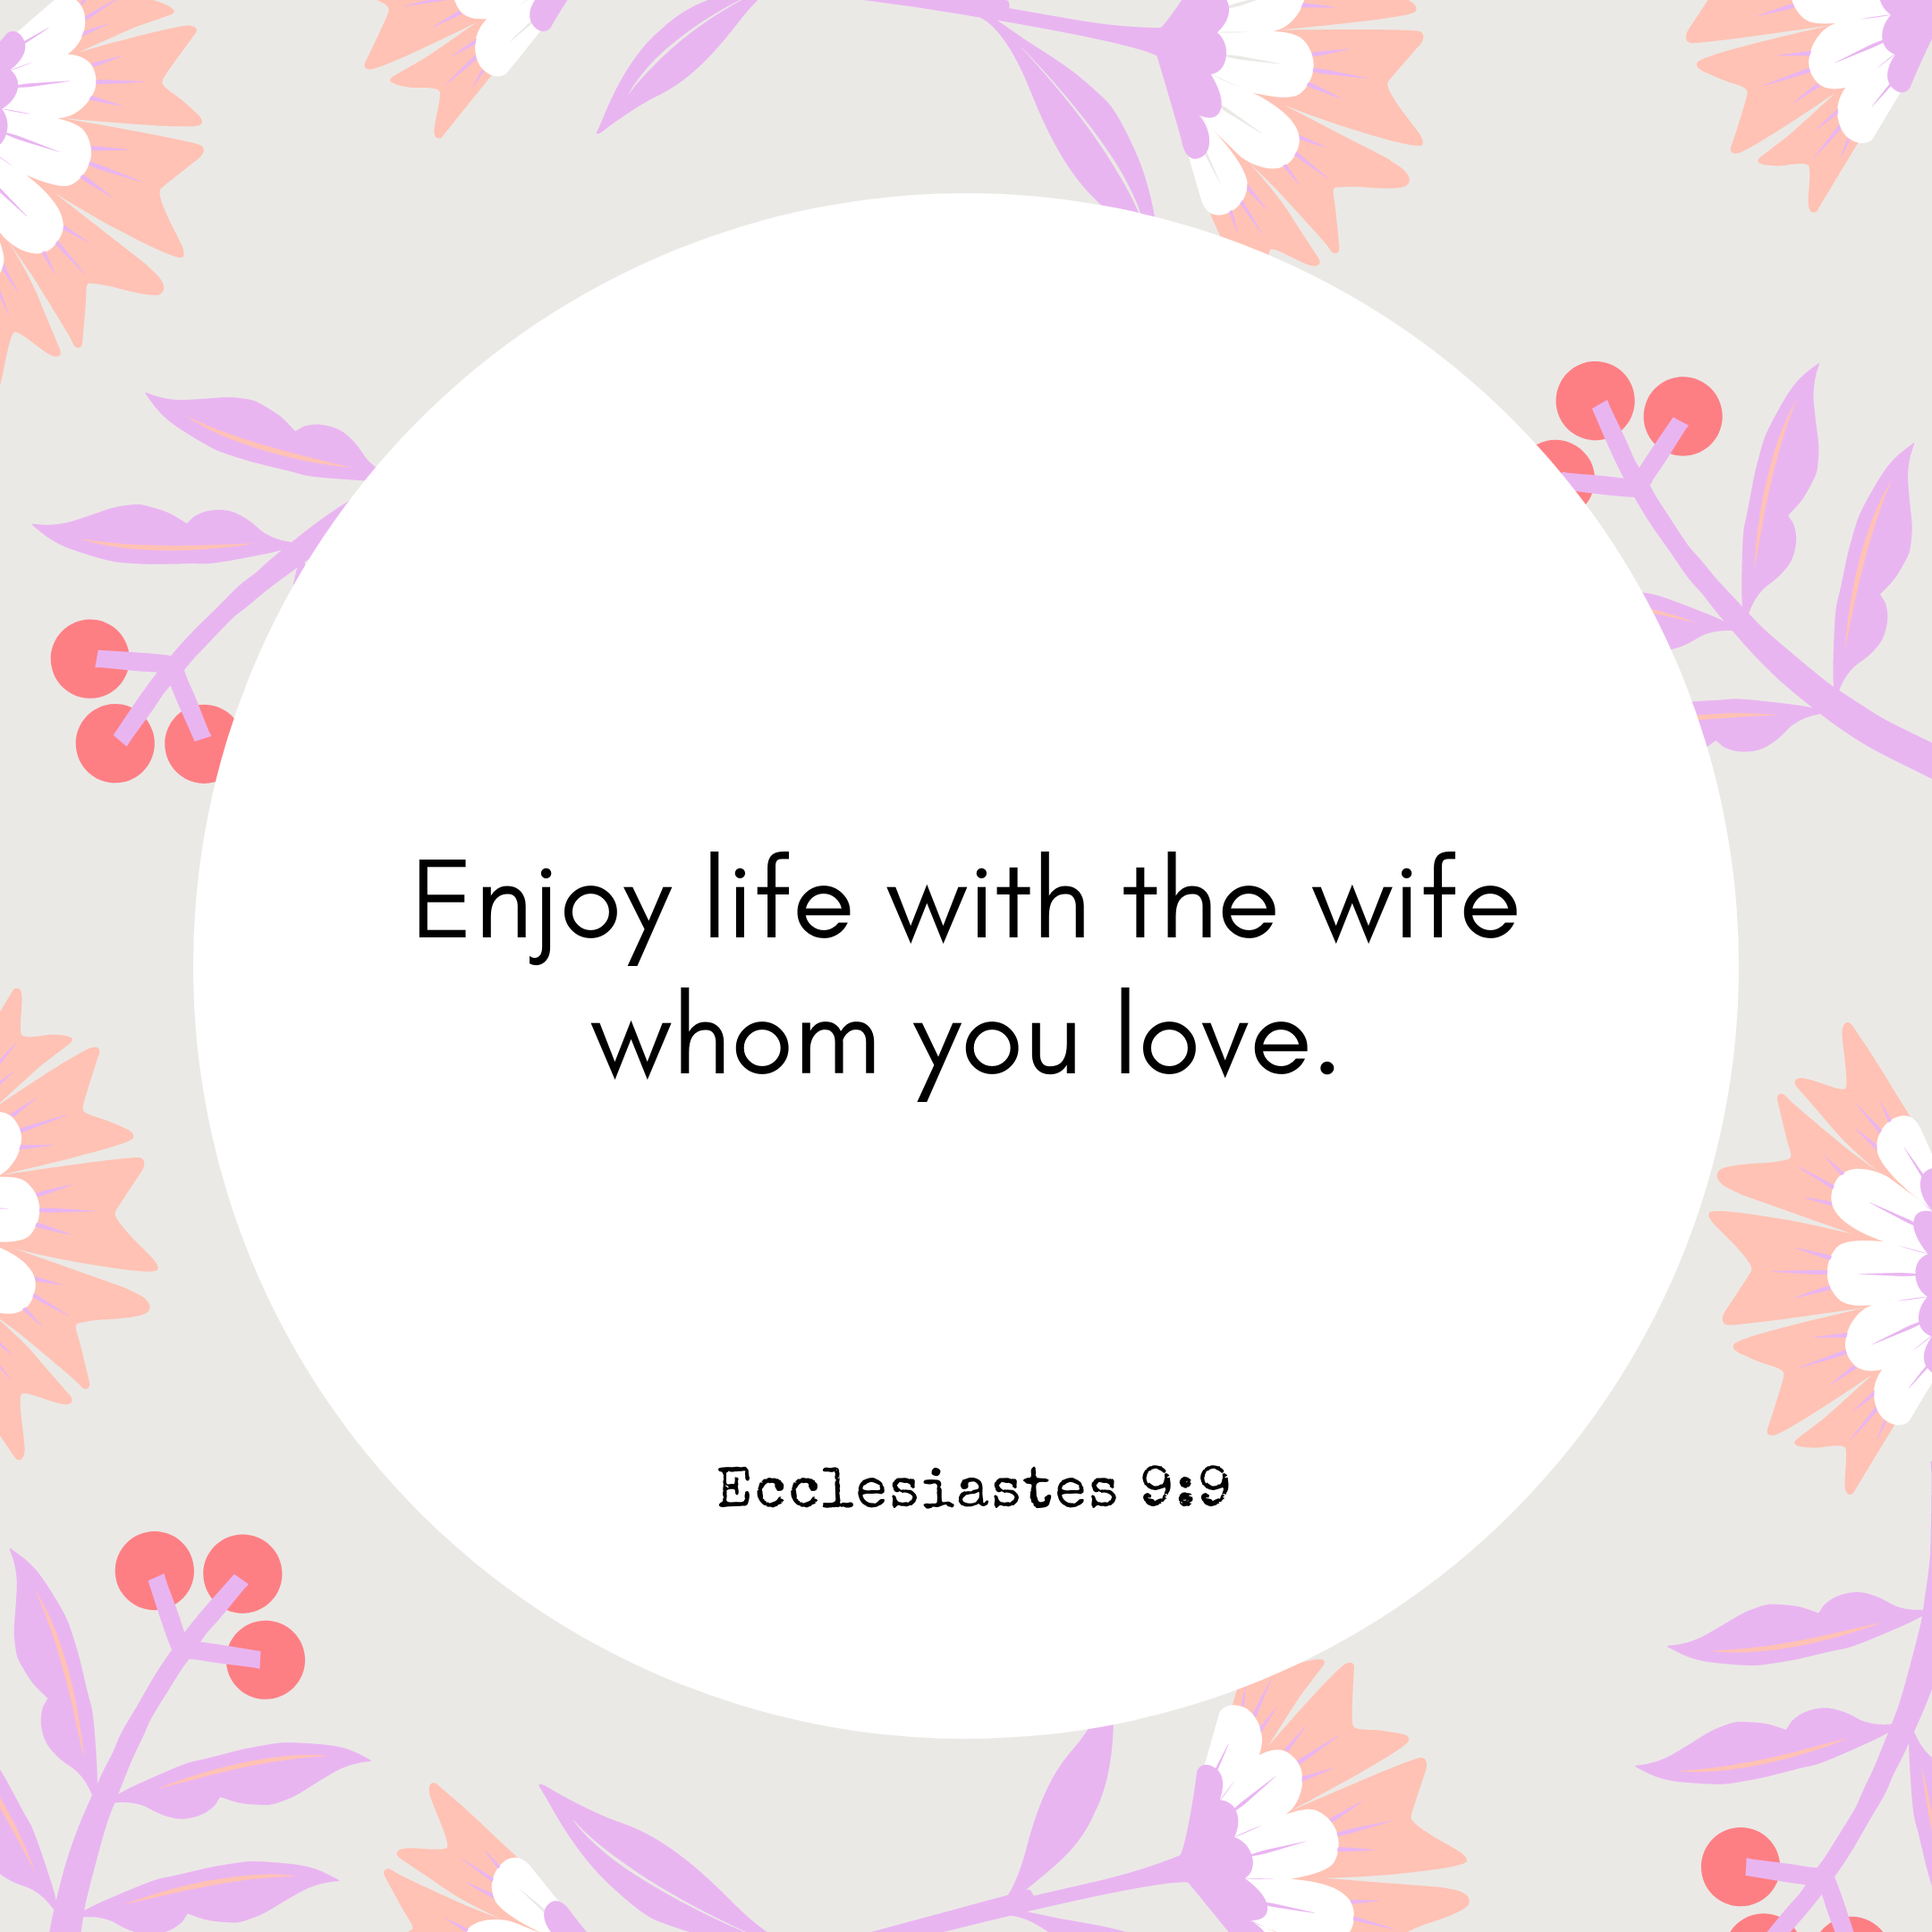 Ecclesiastes 9:9 Enjoy life with the wife whom you love.